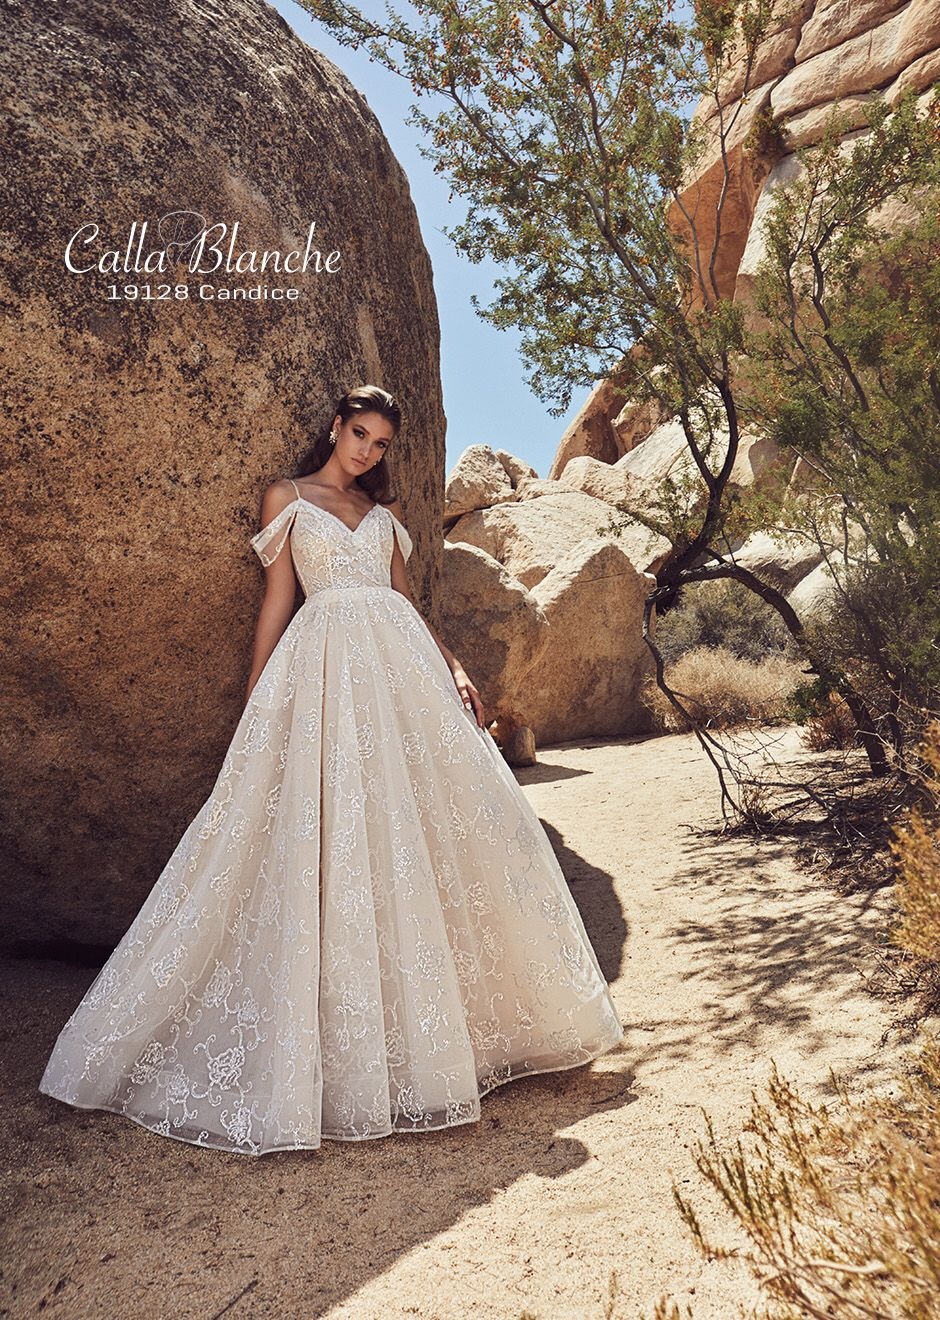 Candice By Calla Blanche Is Here And She Is A Show Stopper That S